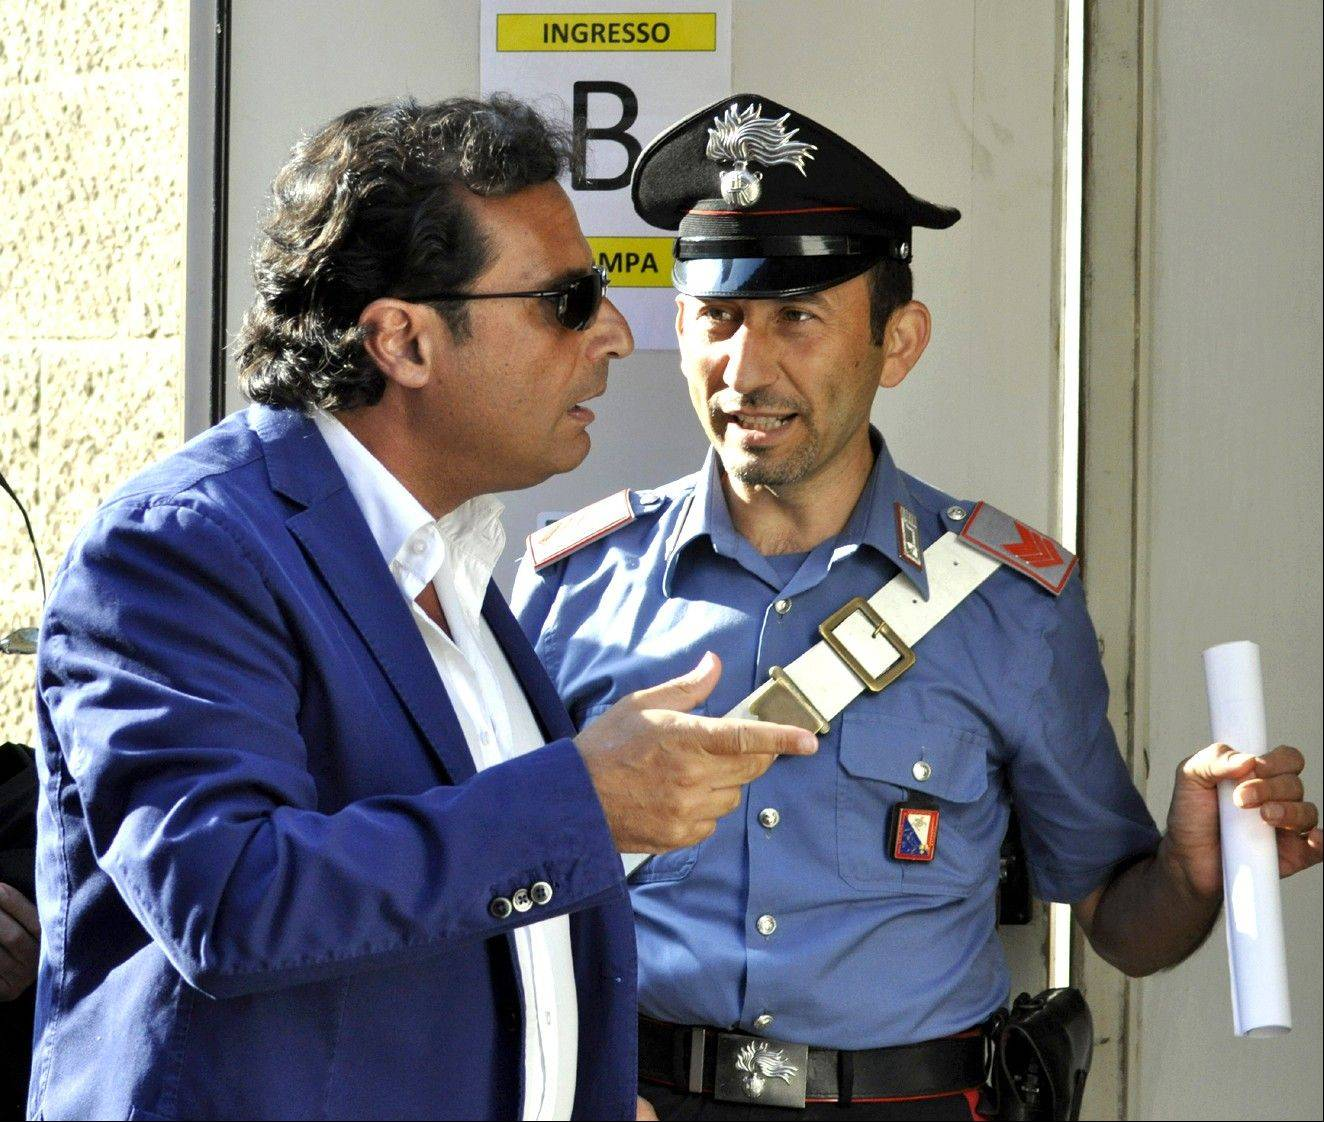 Captian Francesco Schettino arrives for his trial in Grosseto, Italy, Tuesday. The trial of the captain of the shipwrecked Costa Concordia cruise liner has begun in a theater converted into a courtroom in Tuscany to accommodate all the survivors and relatives of the 32 victims who want to see justice carried out in the 2012 tragedy.